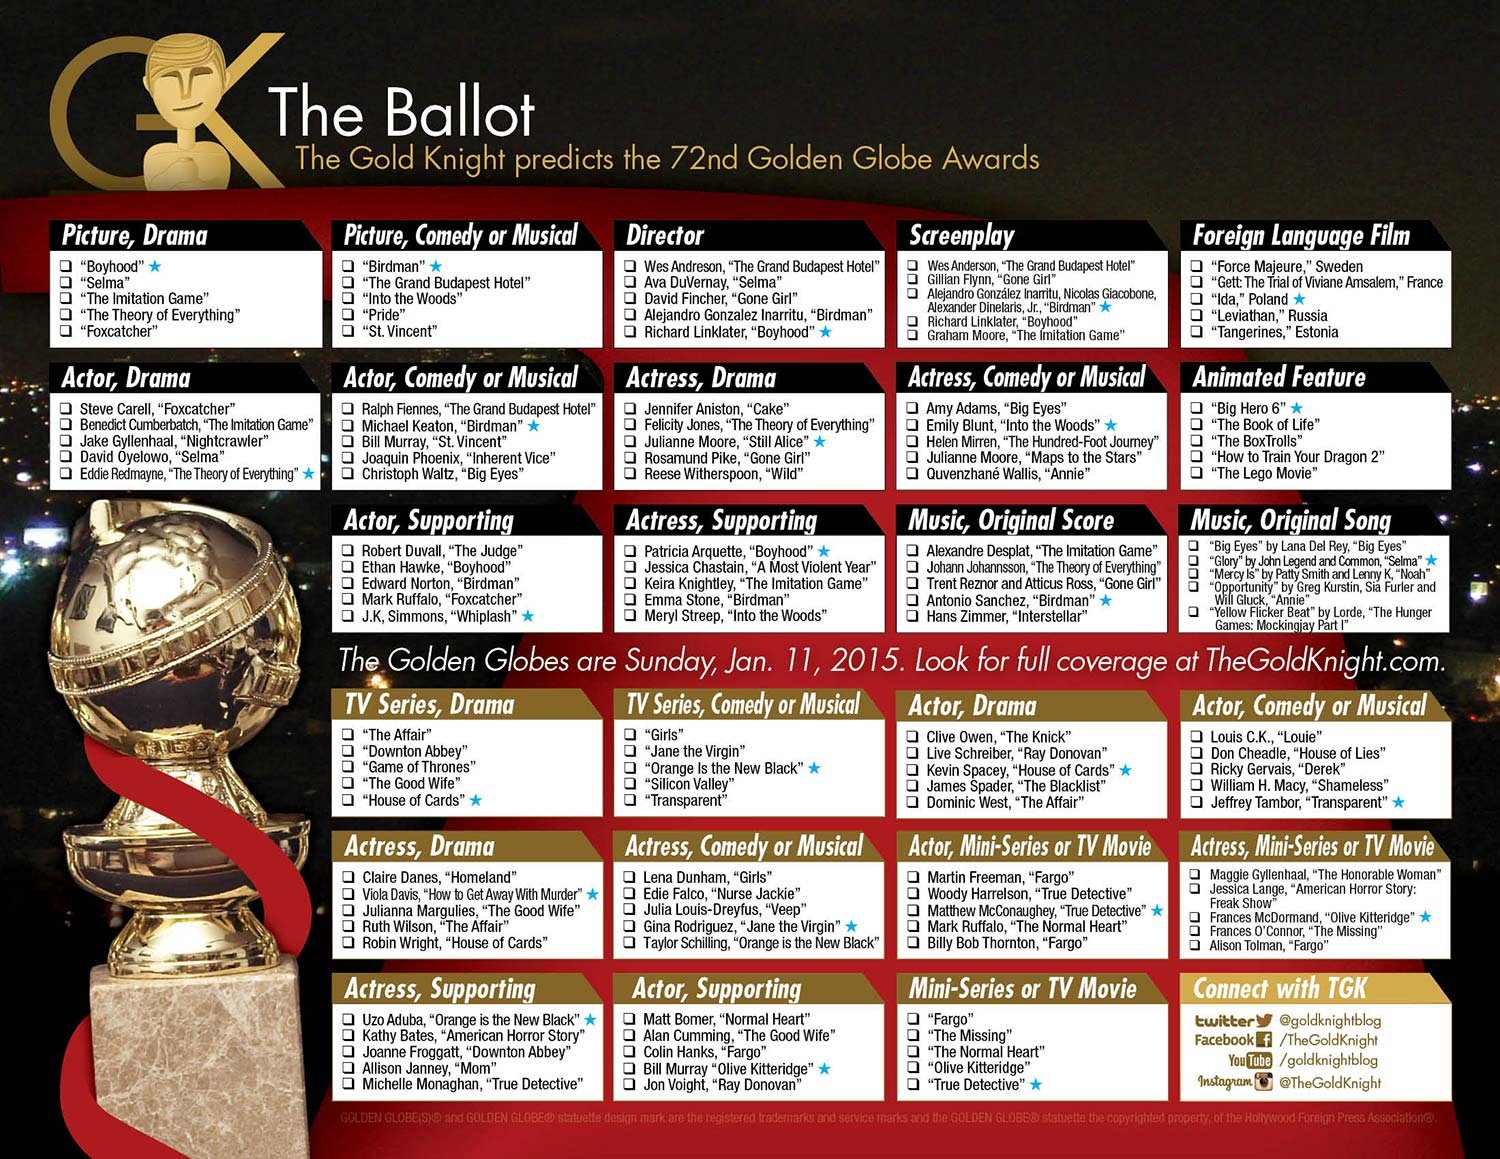 Golden Globe Awards 2018 Nominees See The Full List besides Oscars 2014 Download Our Printable PDF besides Oscars 2013 Download Our Printable Ballot With Predictions besides Ewrazphoto End Of The World Predictions 2017 also 2016 Golden Globes Printable Ballot. on 2016 golden globe awards printable ballot